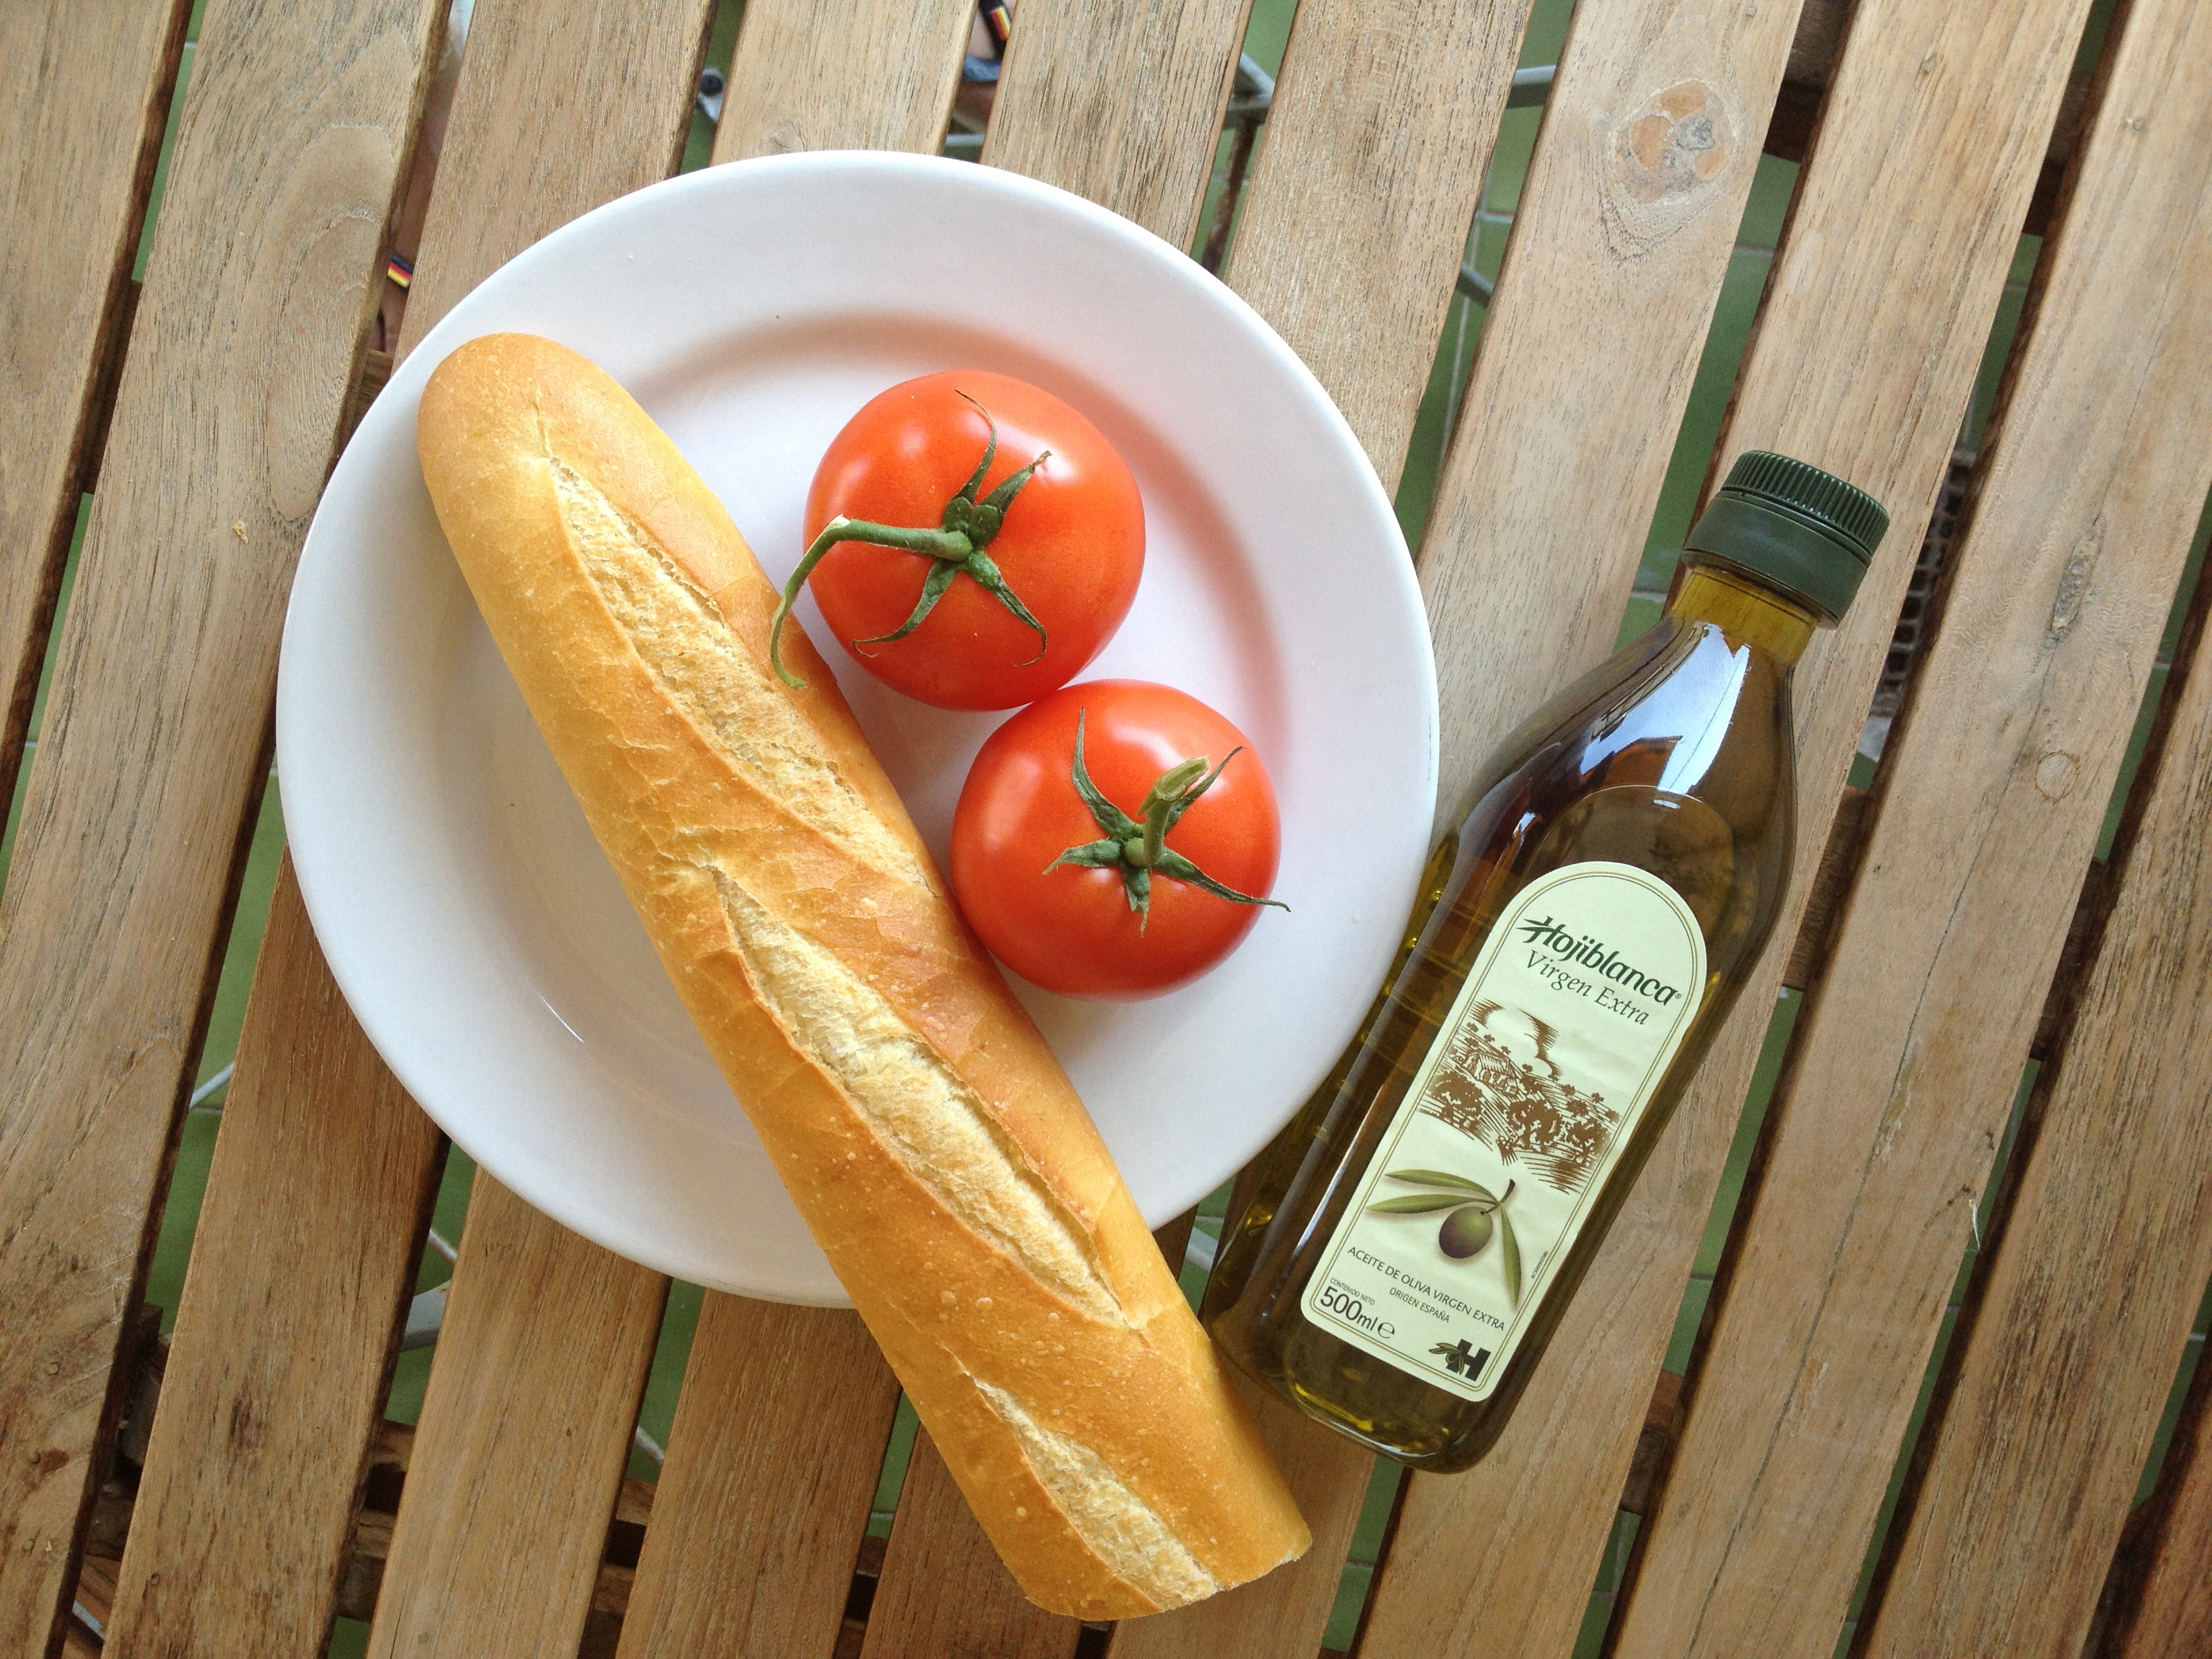 Bread. Tomato. Olive Oil.